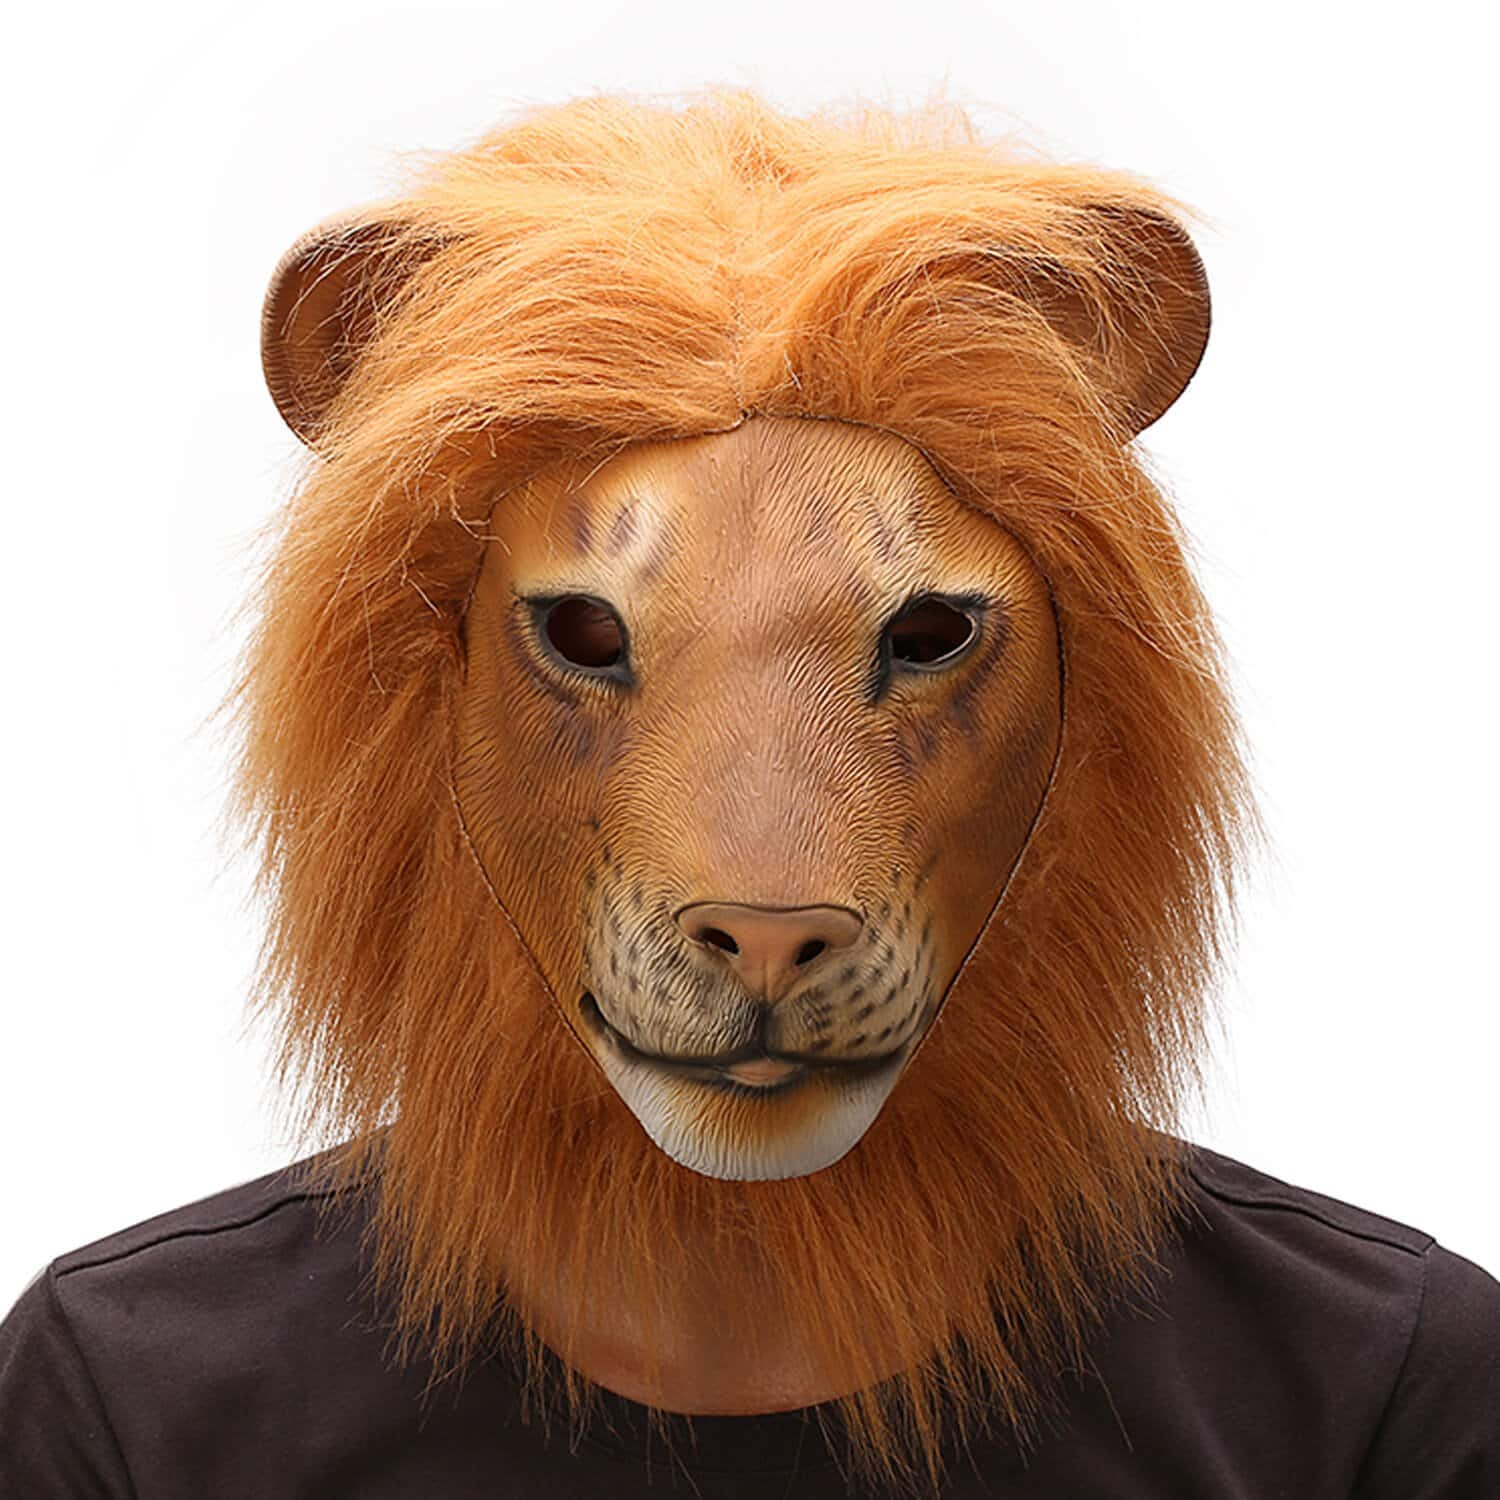 Halloween Christmas Easter Costume Party Masks Funny Latex Animal Head Mask  (Lion) $10 49